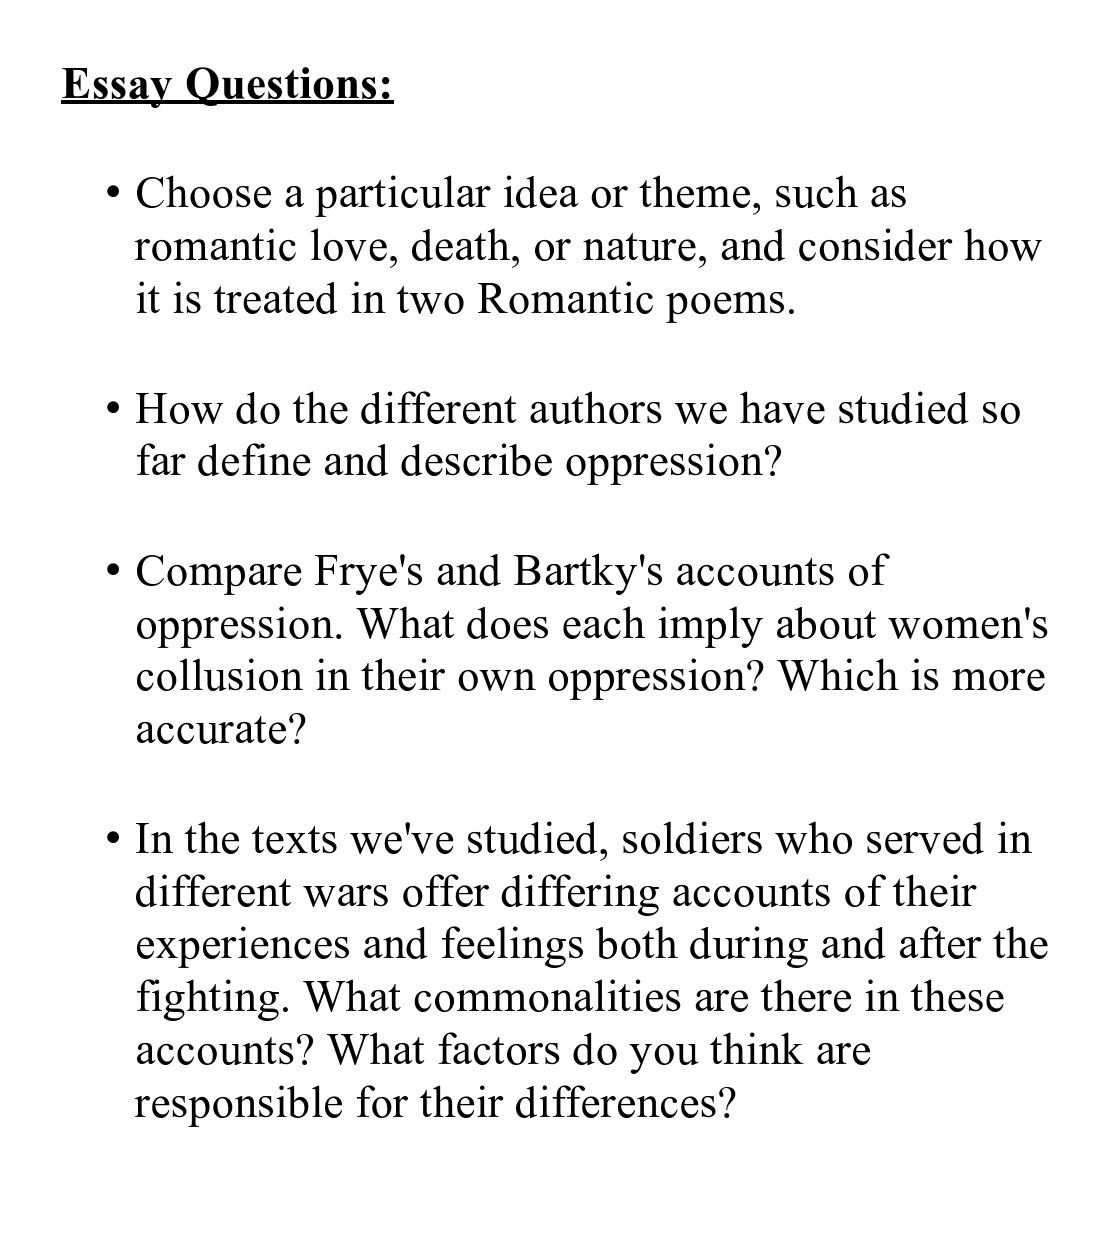 007 Essay Example Prompts Questions Best Writing For High School Geography Us History Frankenstein Full